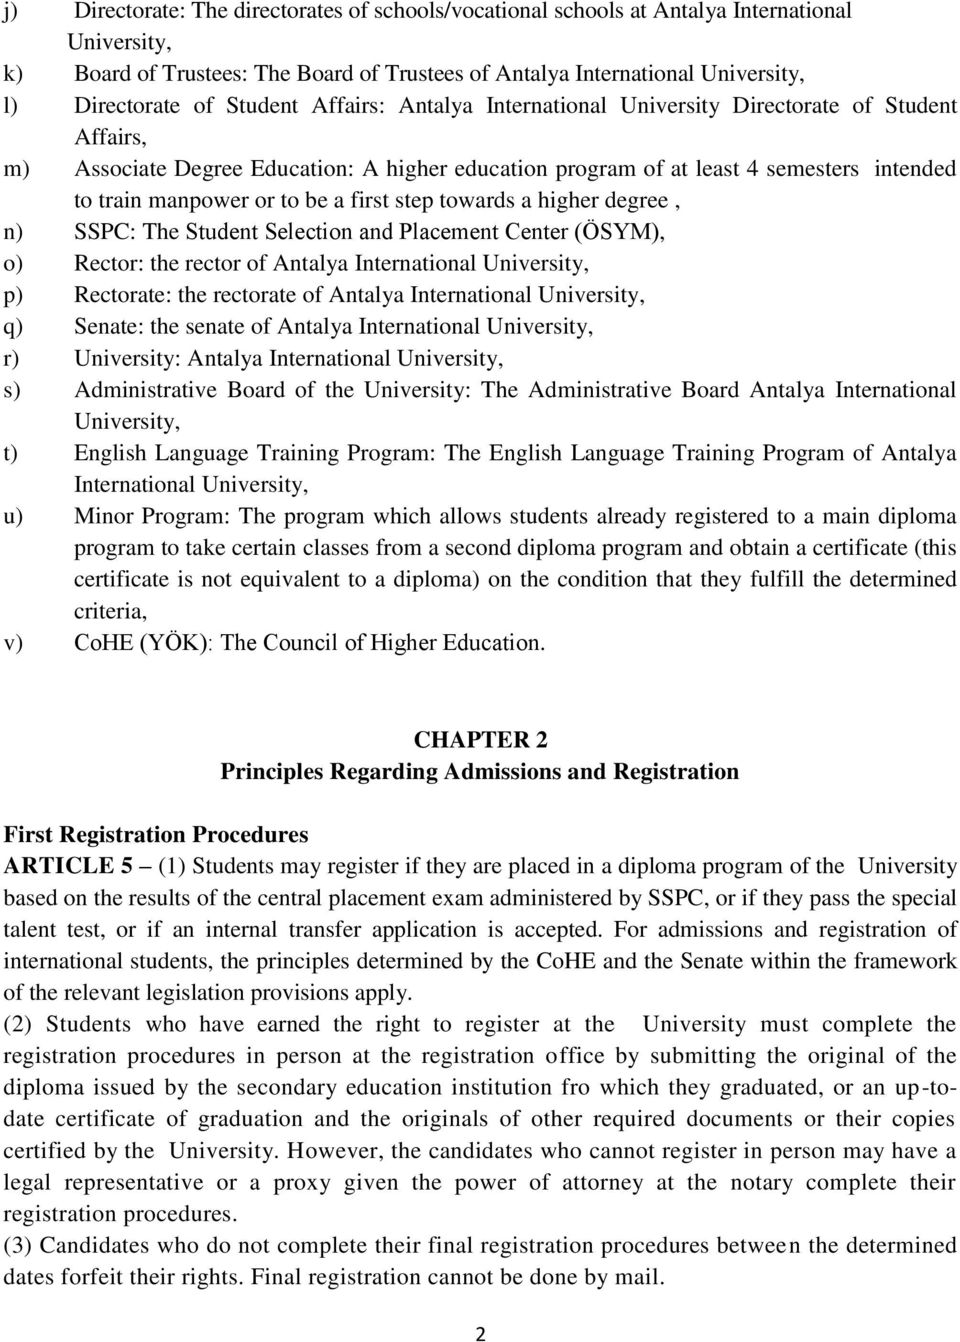 a first step towards a higher degree, n) SSPC: The Student Selection and Placement Center (ÖSYM), o) Rector: the rector of Antalya International University, p) Rectorate: the rectorate of Antalya